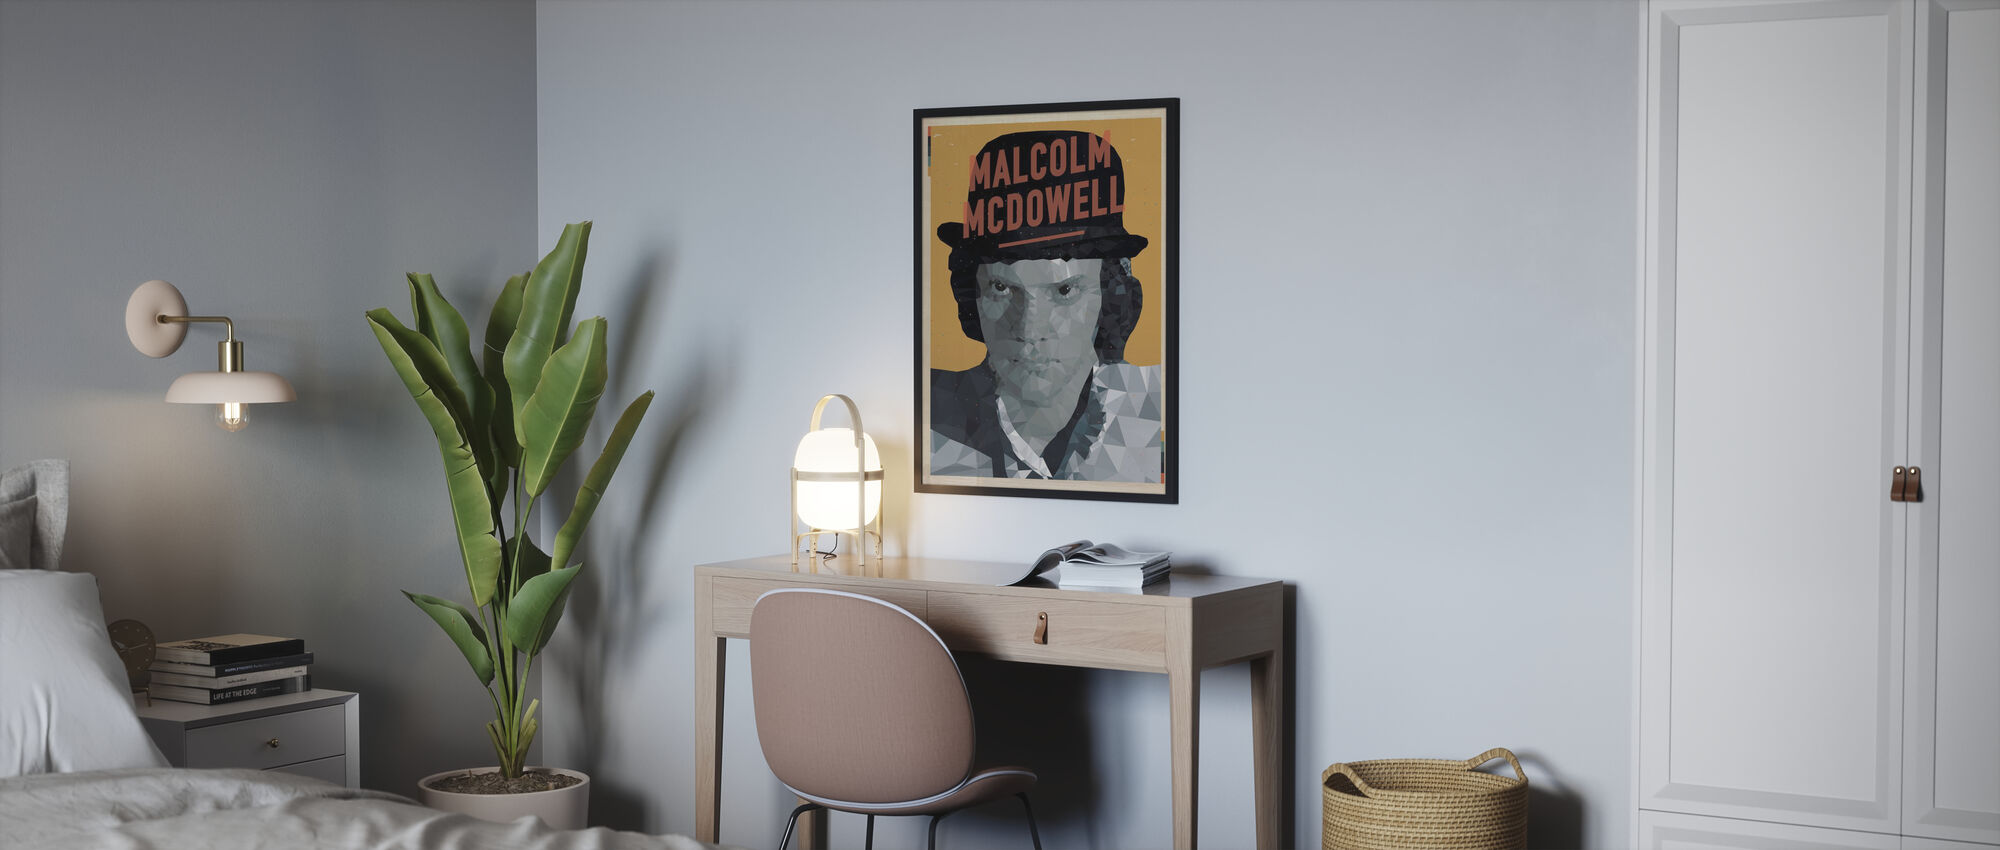 I was Cured, All Right - Poster - Bedroom